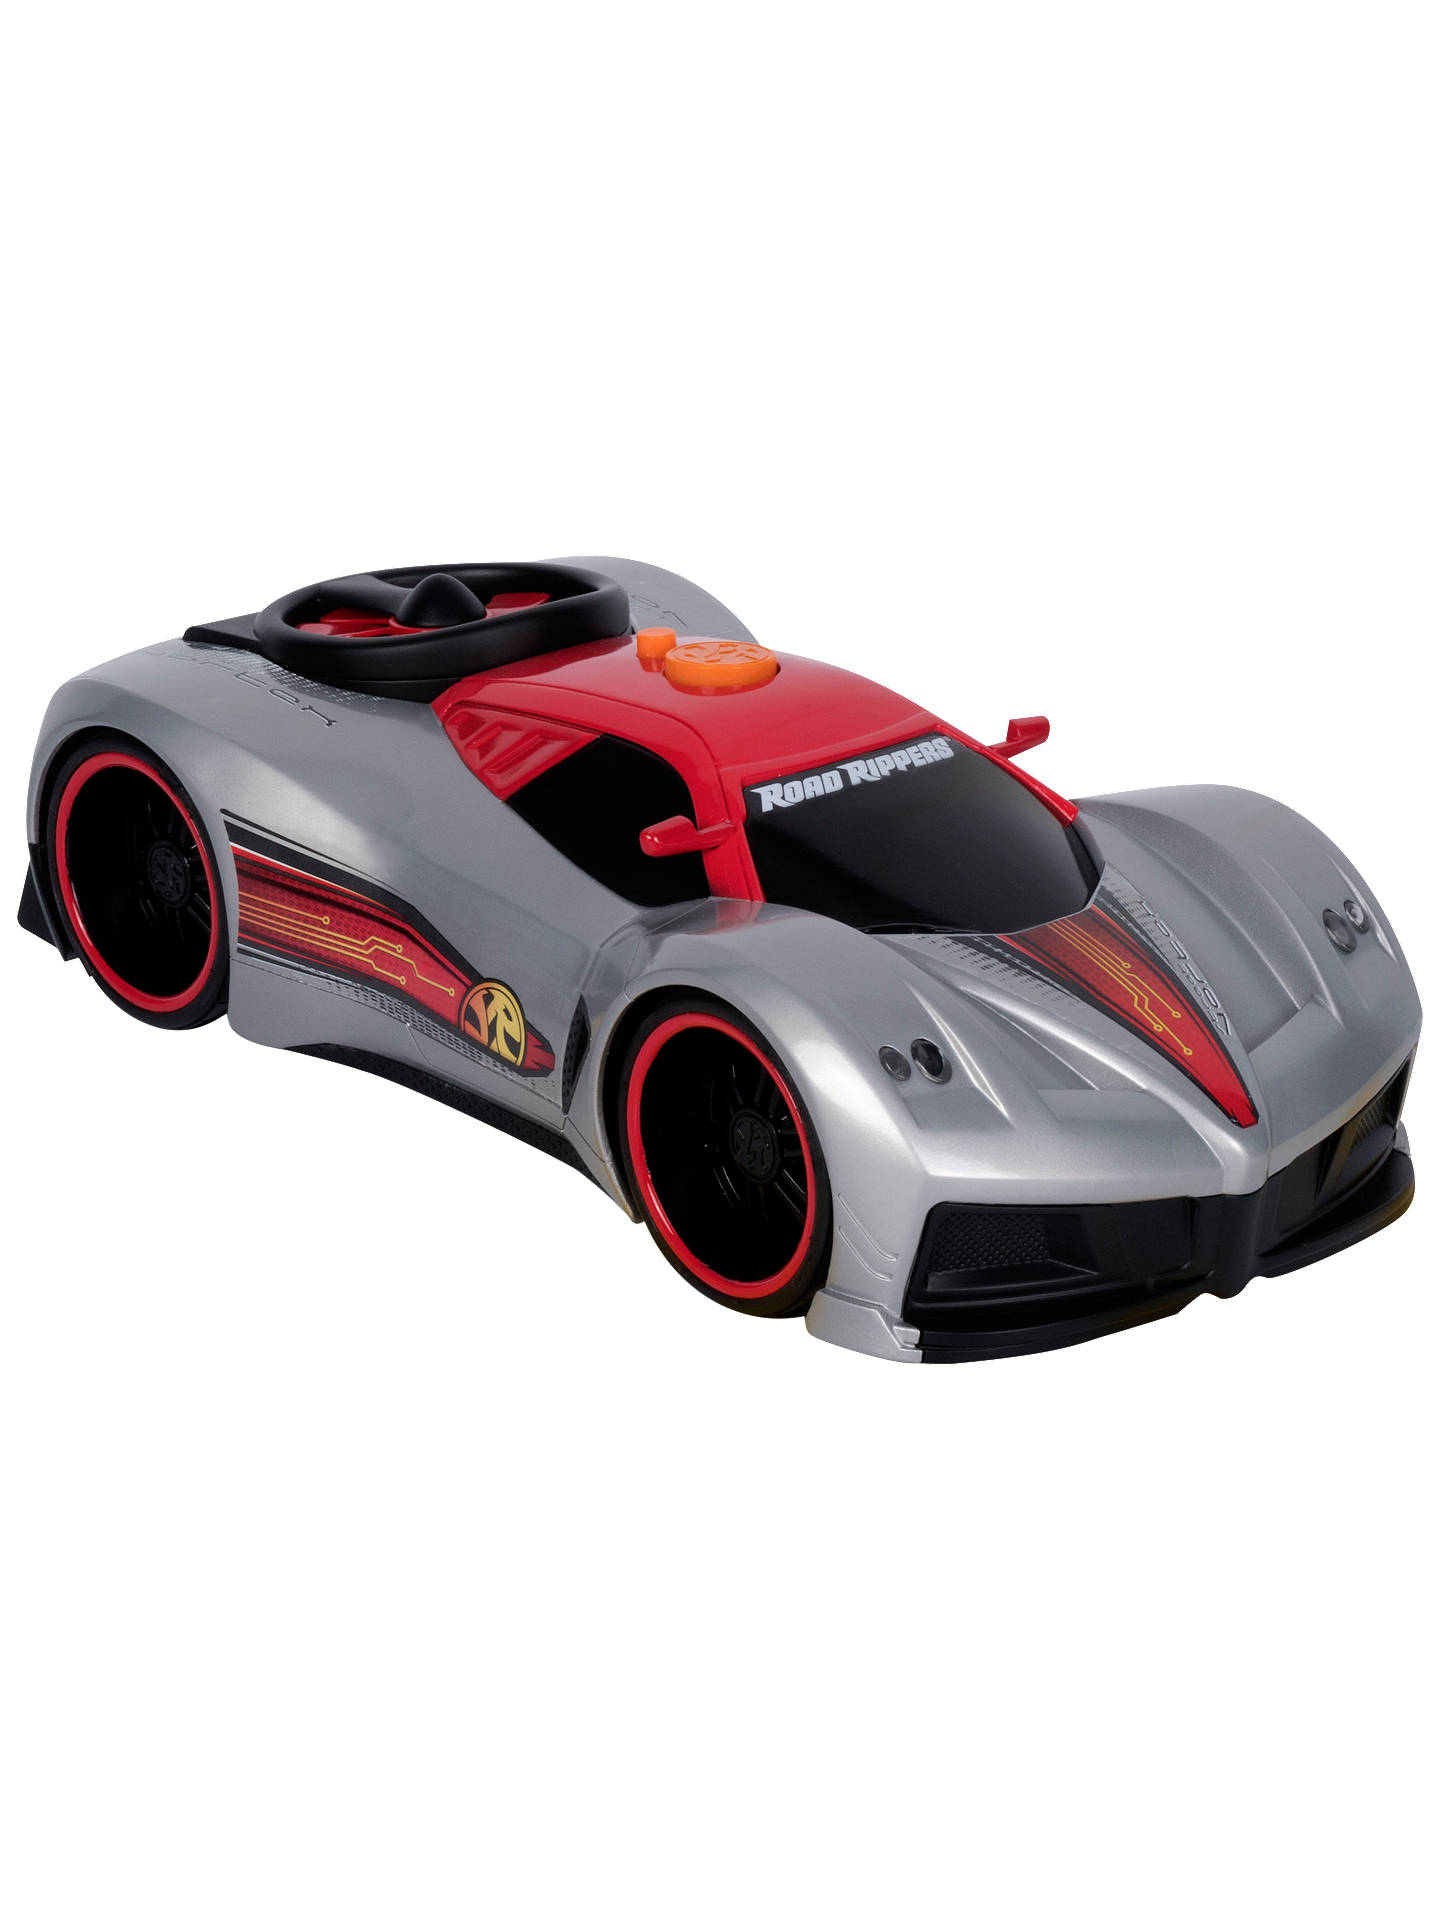 BuyRoad Rippers Street Vortex Crimson Car Online at johnlewis.com